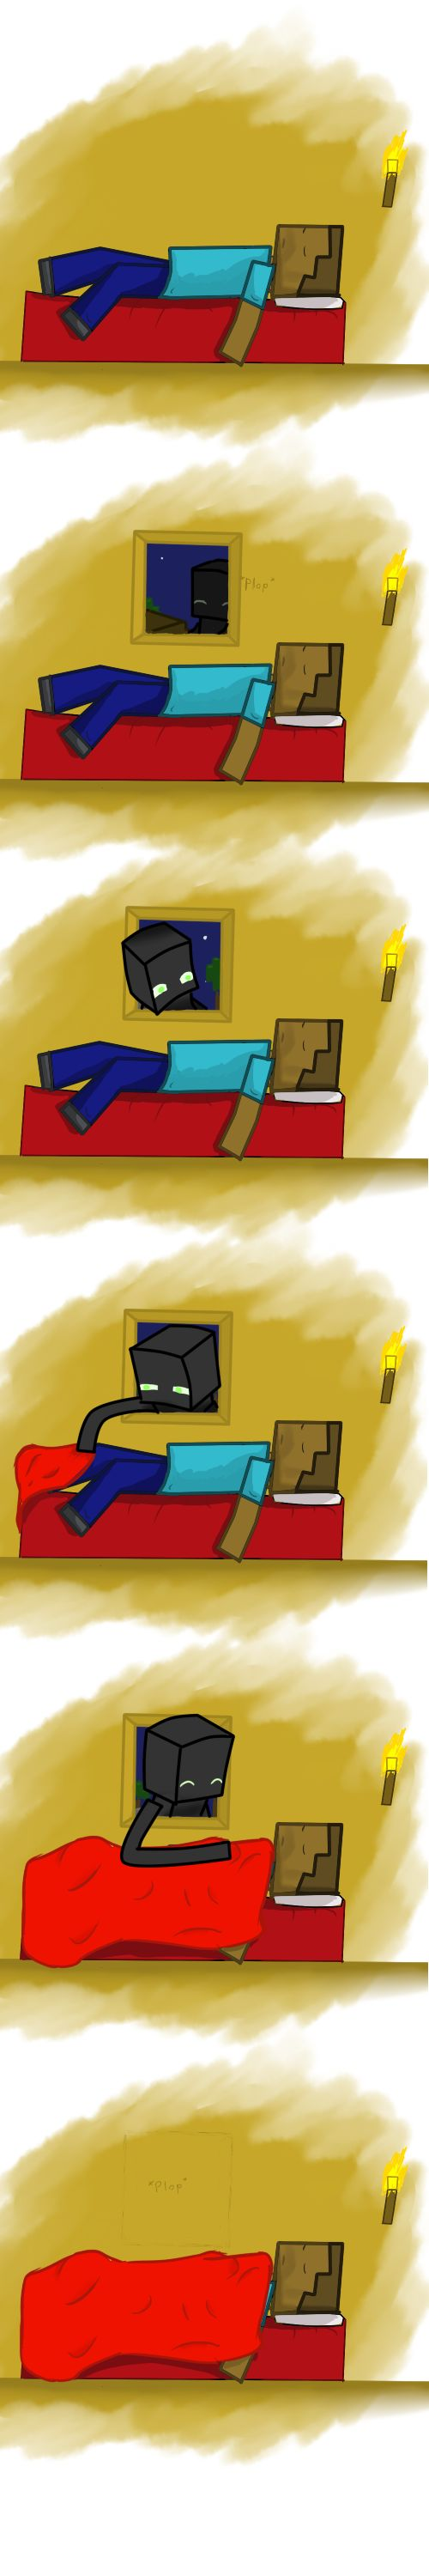 Who said Enderman are bad? #minecraft #enderman Idk why I thought this was so cute